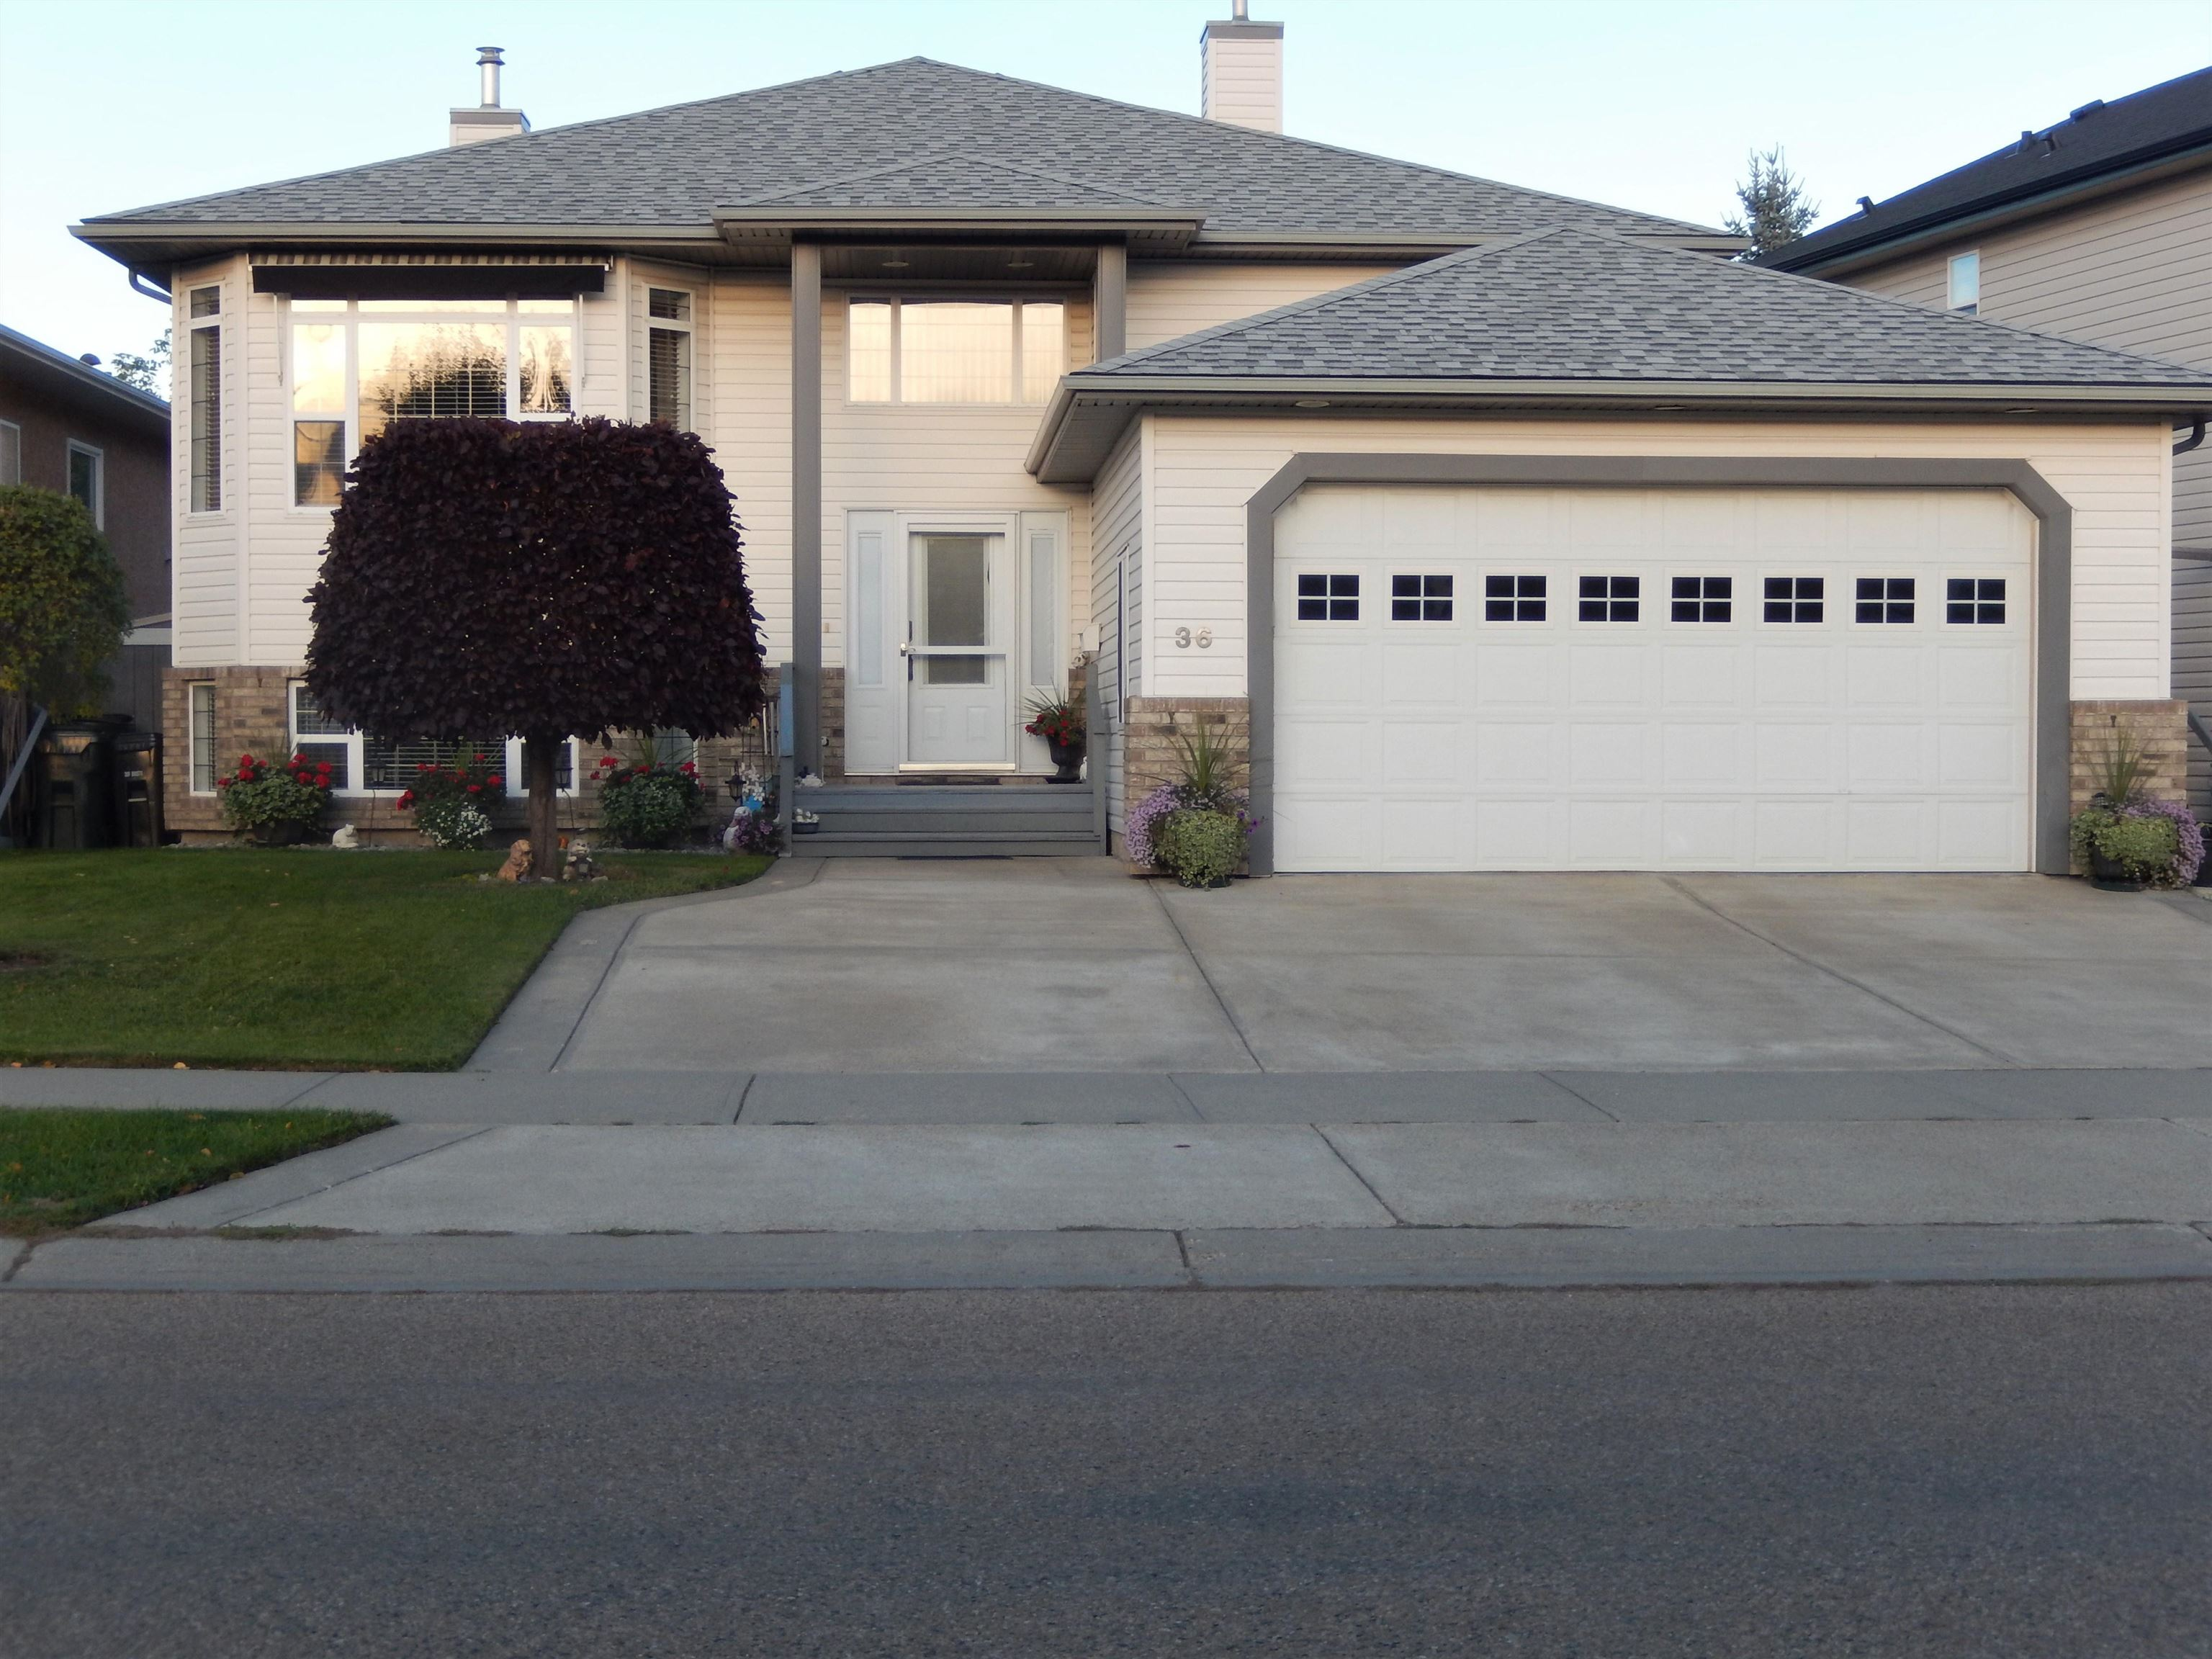 IMPECCABLE HOME with over 2700 sq ft of living space. Its had the same owner for the last 15 yrs. Spacious kitchen with ISLAND/EATING BAR, large PANTRY, built in CABINET/DESK & a spacious dining rm with 2 WAY FIREPLACE thru to the living room. The back door off the kitchen leads out to the DECK for convenient BARBECUES. PILLARS, LARGE BAY WINDOW & unique style finish the living rm. The MASTER BEDR has a WALK-IN CLOSET, & glorious ENSUITE, complete with CORNER JACUZZI, MAKEUP VANITY, separate SHOWER & WATER RM. No carpet on the main or on the stairs. Downstairs....LARGE FAMILY RM with CORNER GAS FIREPLACE,  2 more LARGE BEDRS complete with WALK-IN CLOSETS, FULL BATHR & LAUNDRY RM plus loads of STORAGE AREAS & the UTILITY RM.   SHINGLES were replaced 2 yrs ago & the mother board on the FURNACE (1 YR). The immaculate yard is FULLY FENCED, has a MAINTENANCE FREE SHED, STONE PATHS, SCULPTED TREES + PERENNIALS. The GARAGE (20x23) is RADIANT HEATED & comes with WORKBENCHES, SHELVING & AIR COMPRESSOR.